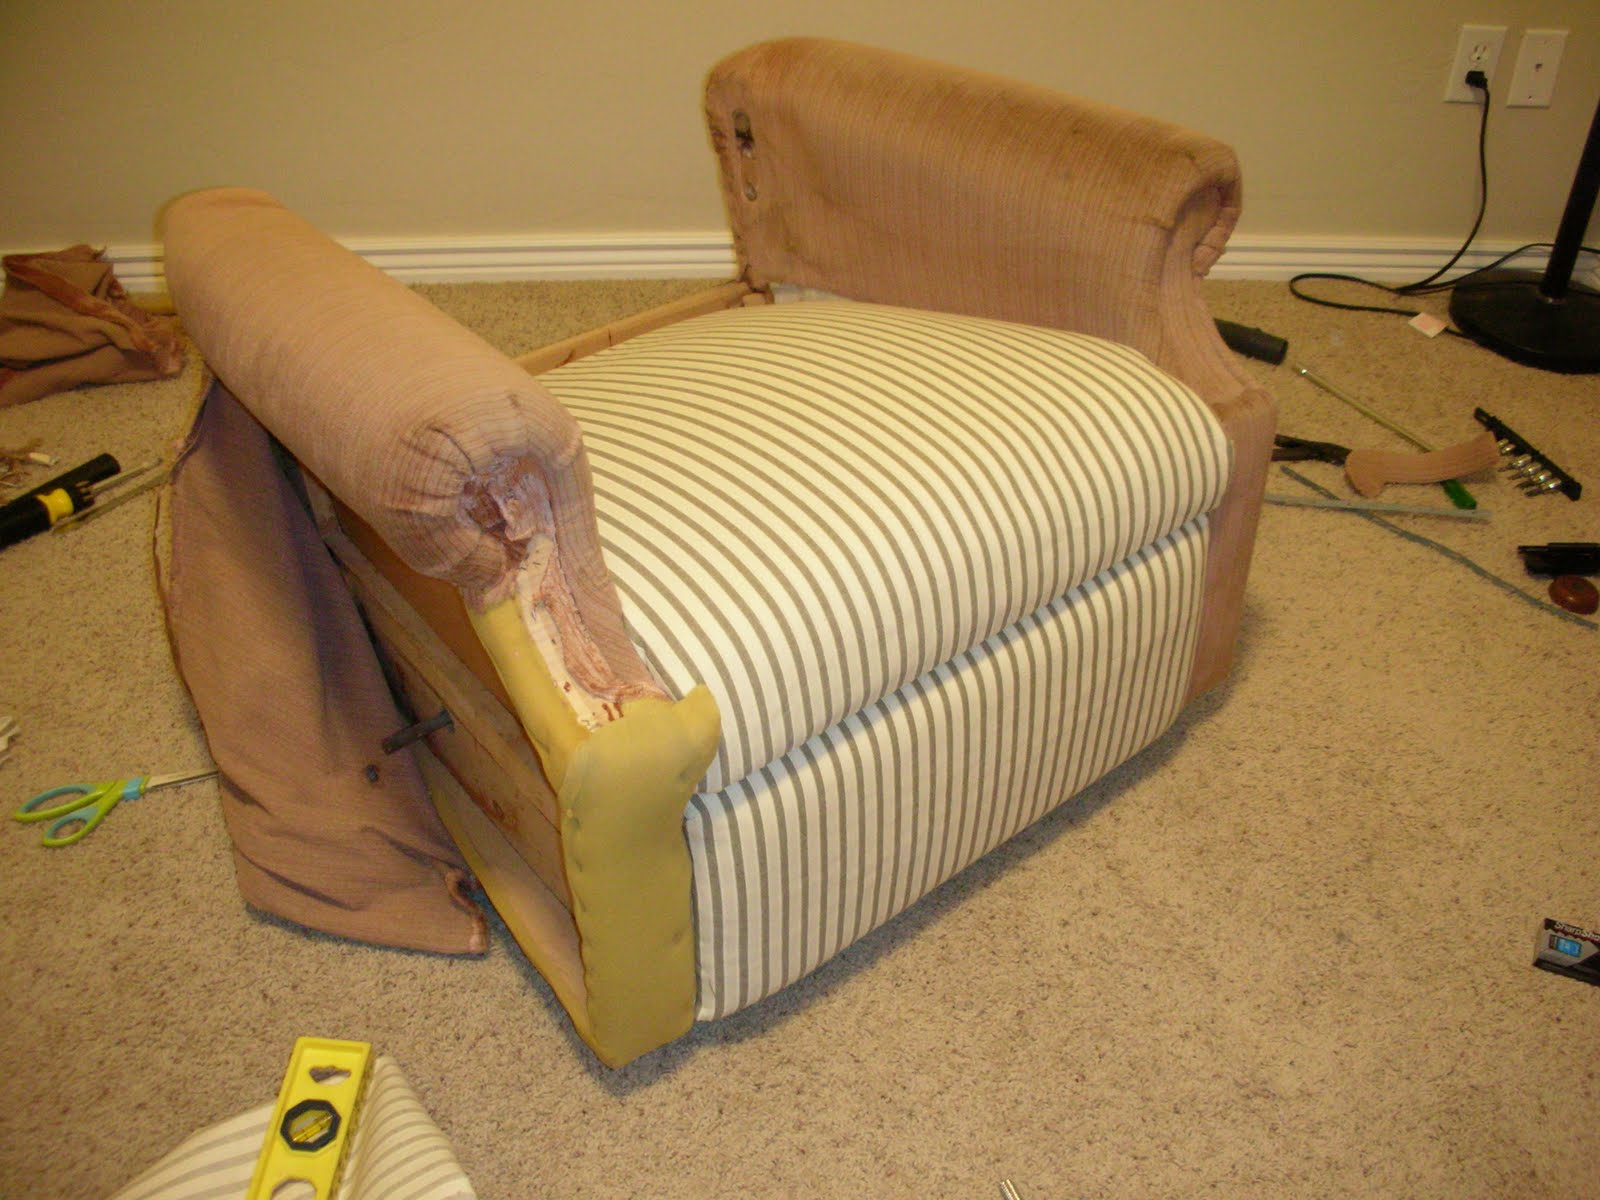 DIY Reupholster An Old La-Z-Boy Recliner : lazy boy recliner arm covers - islam-shia.org